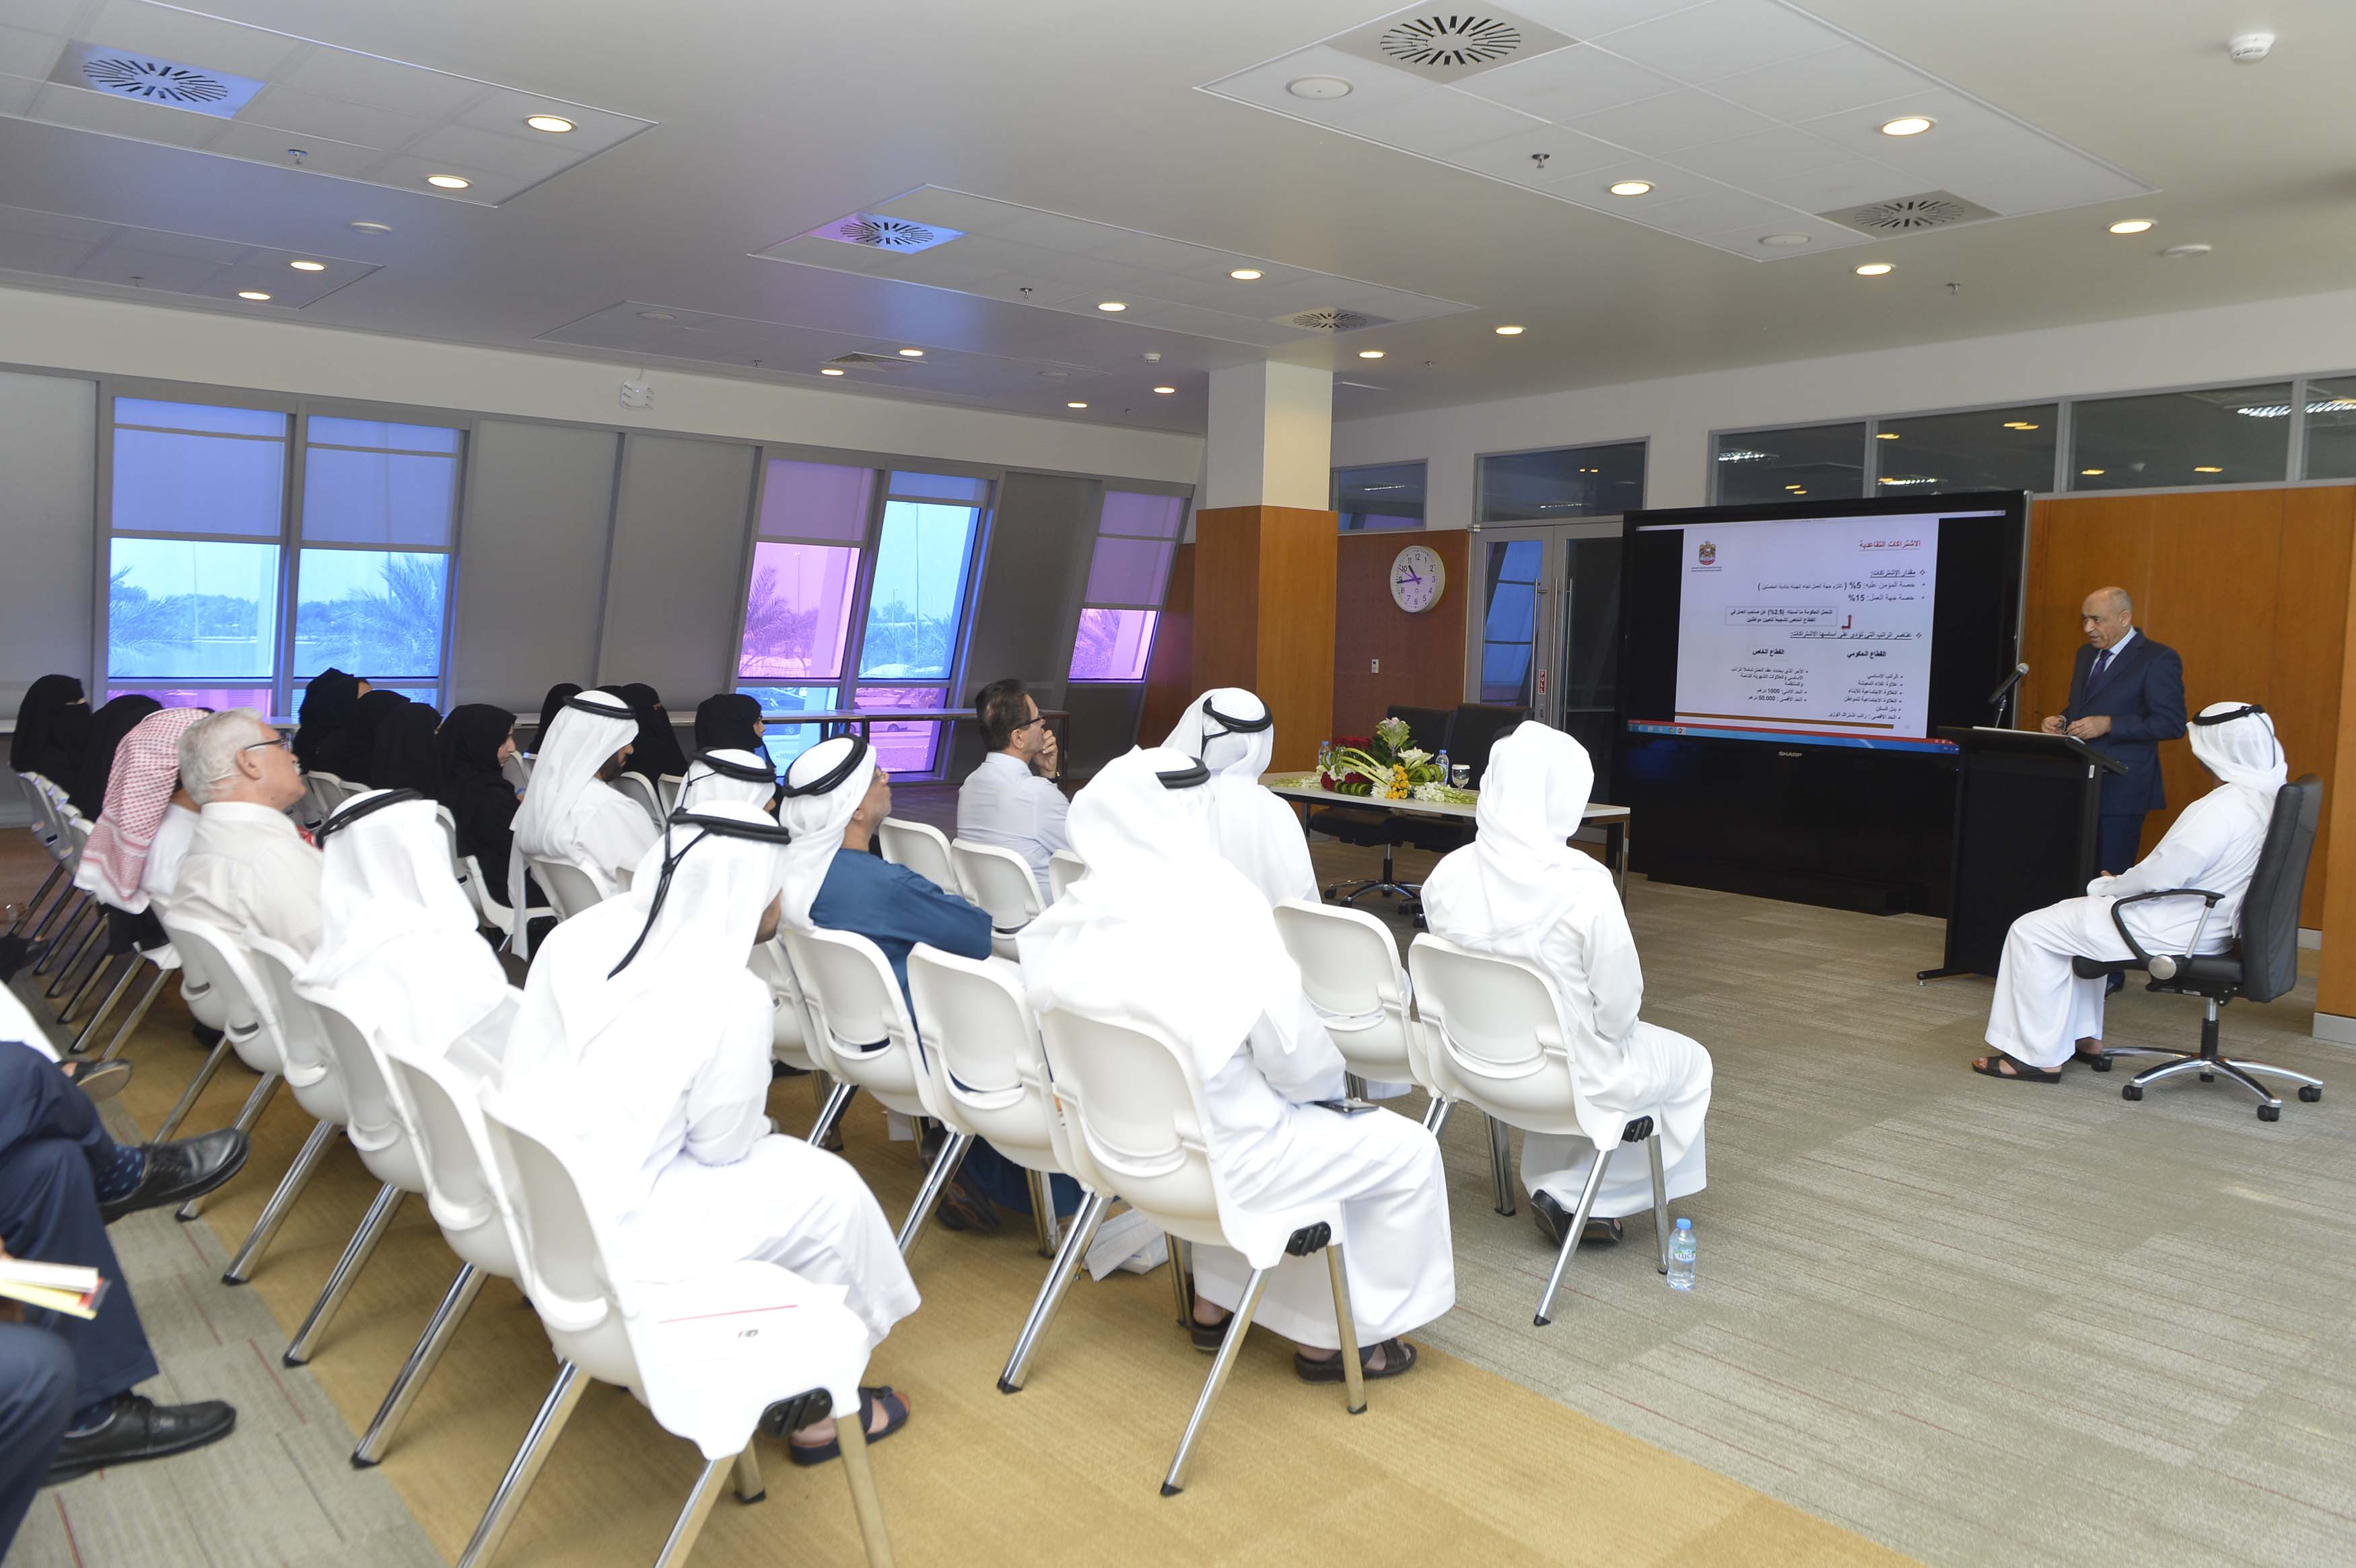 The Human Resources Department At The United Arab Emirates University Organizes A Seminar On Uae Pension Law